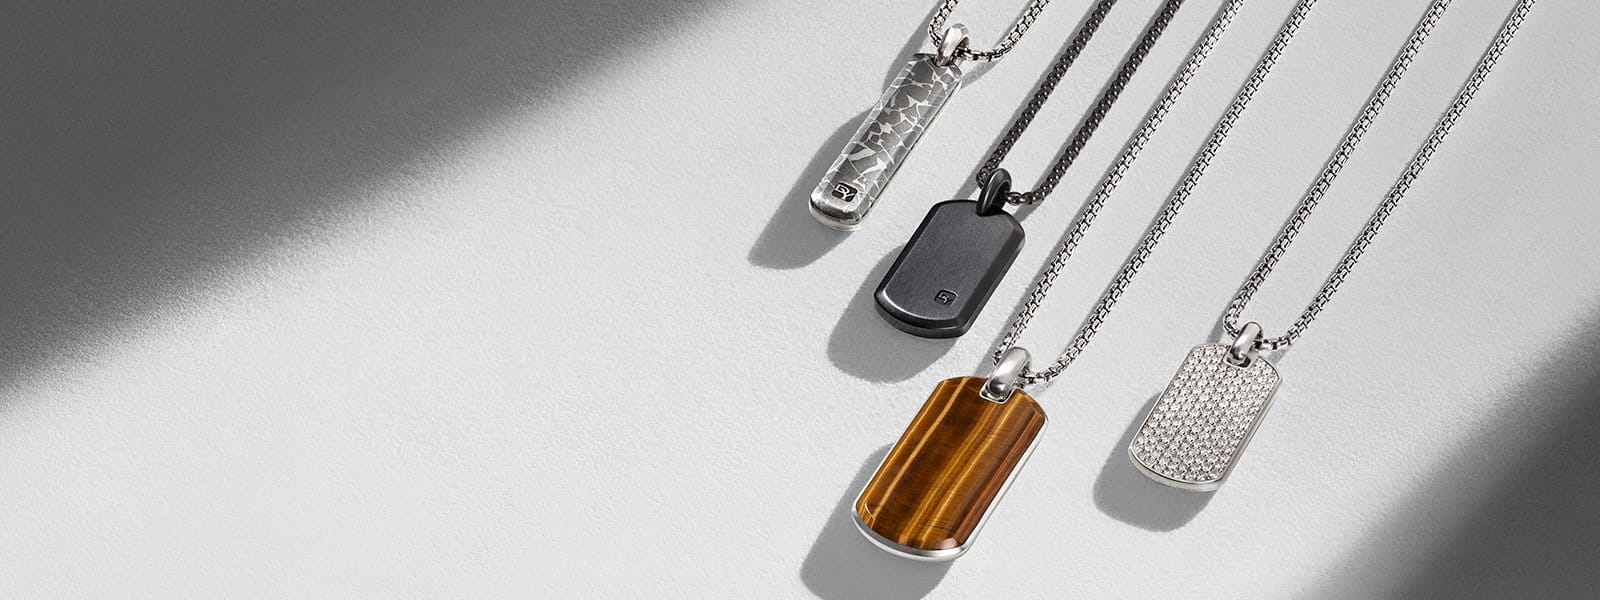 Meteorite, Streamline and Exotic Stone tags in sterling silver or black titanium with fused meteorite, tiger's eye or white diamonds, strung on chains and arranged in a diagonal row in a ray of light on a textured white stone.